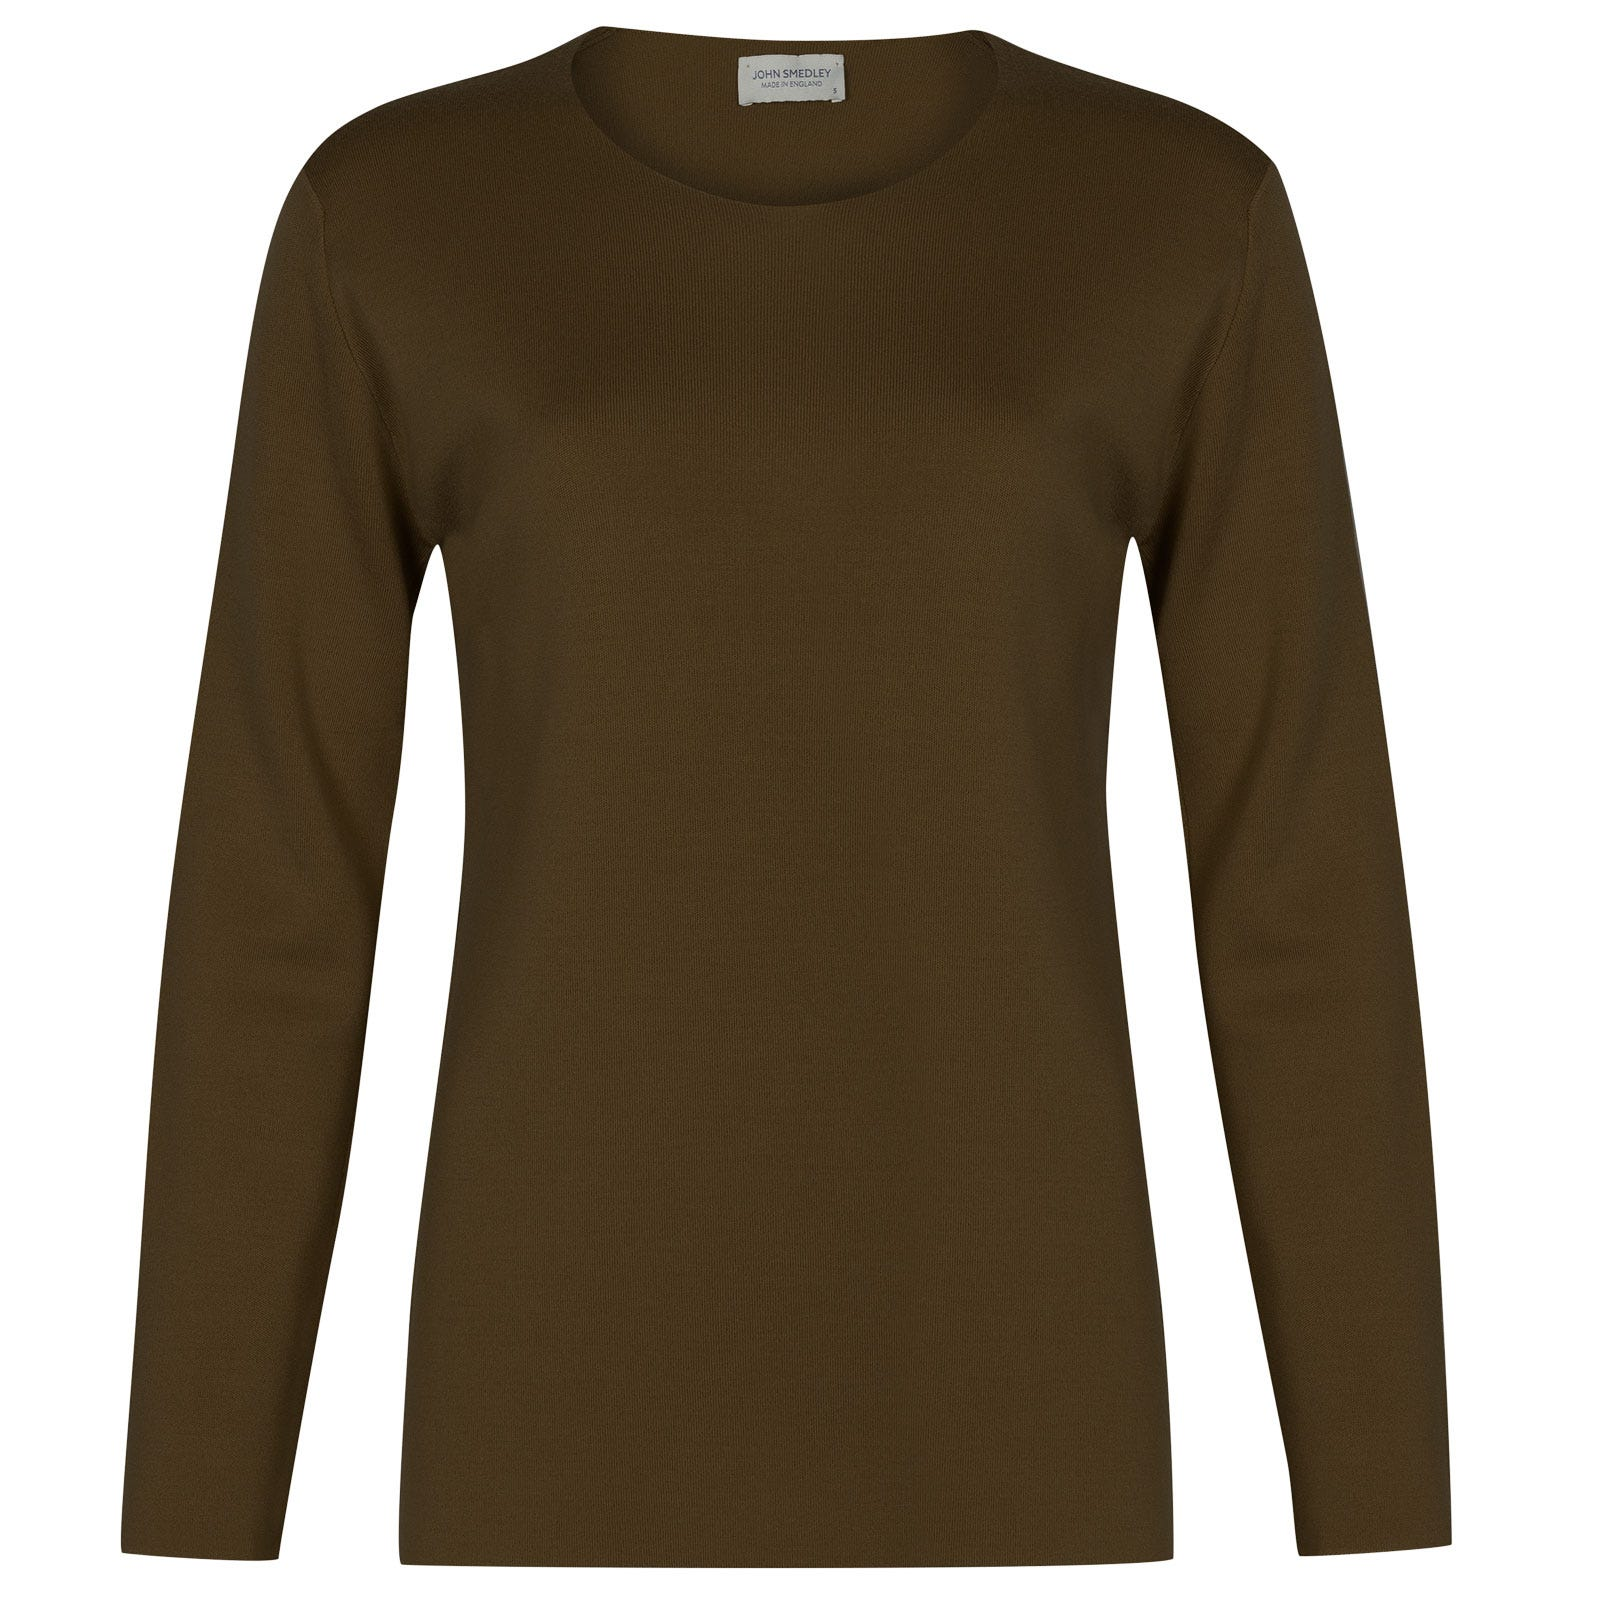 John Smedley Milton Merino Wool Sweater in Kielder Green-XL